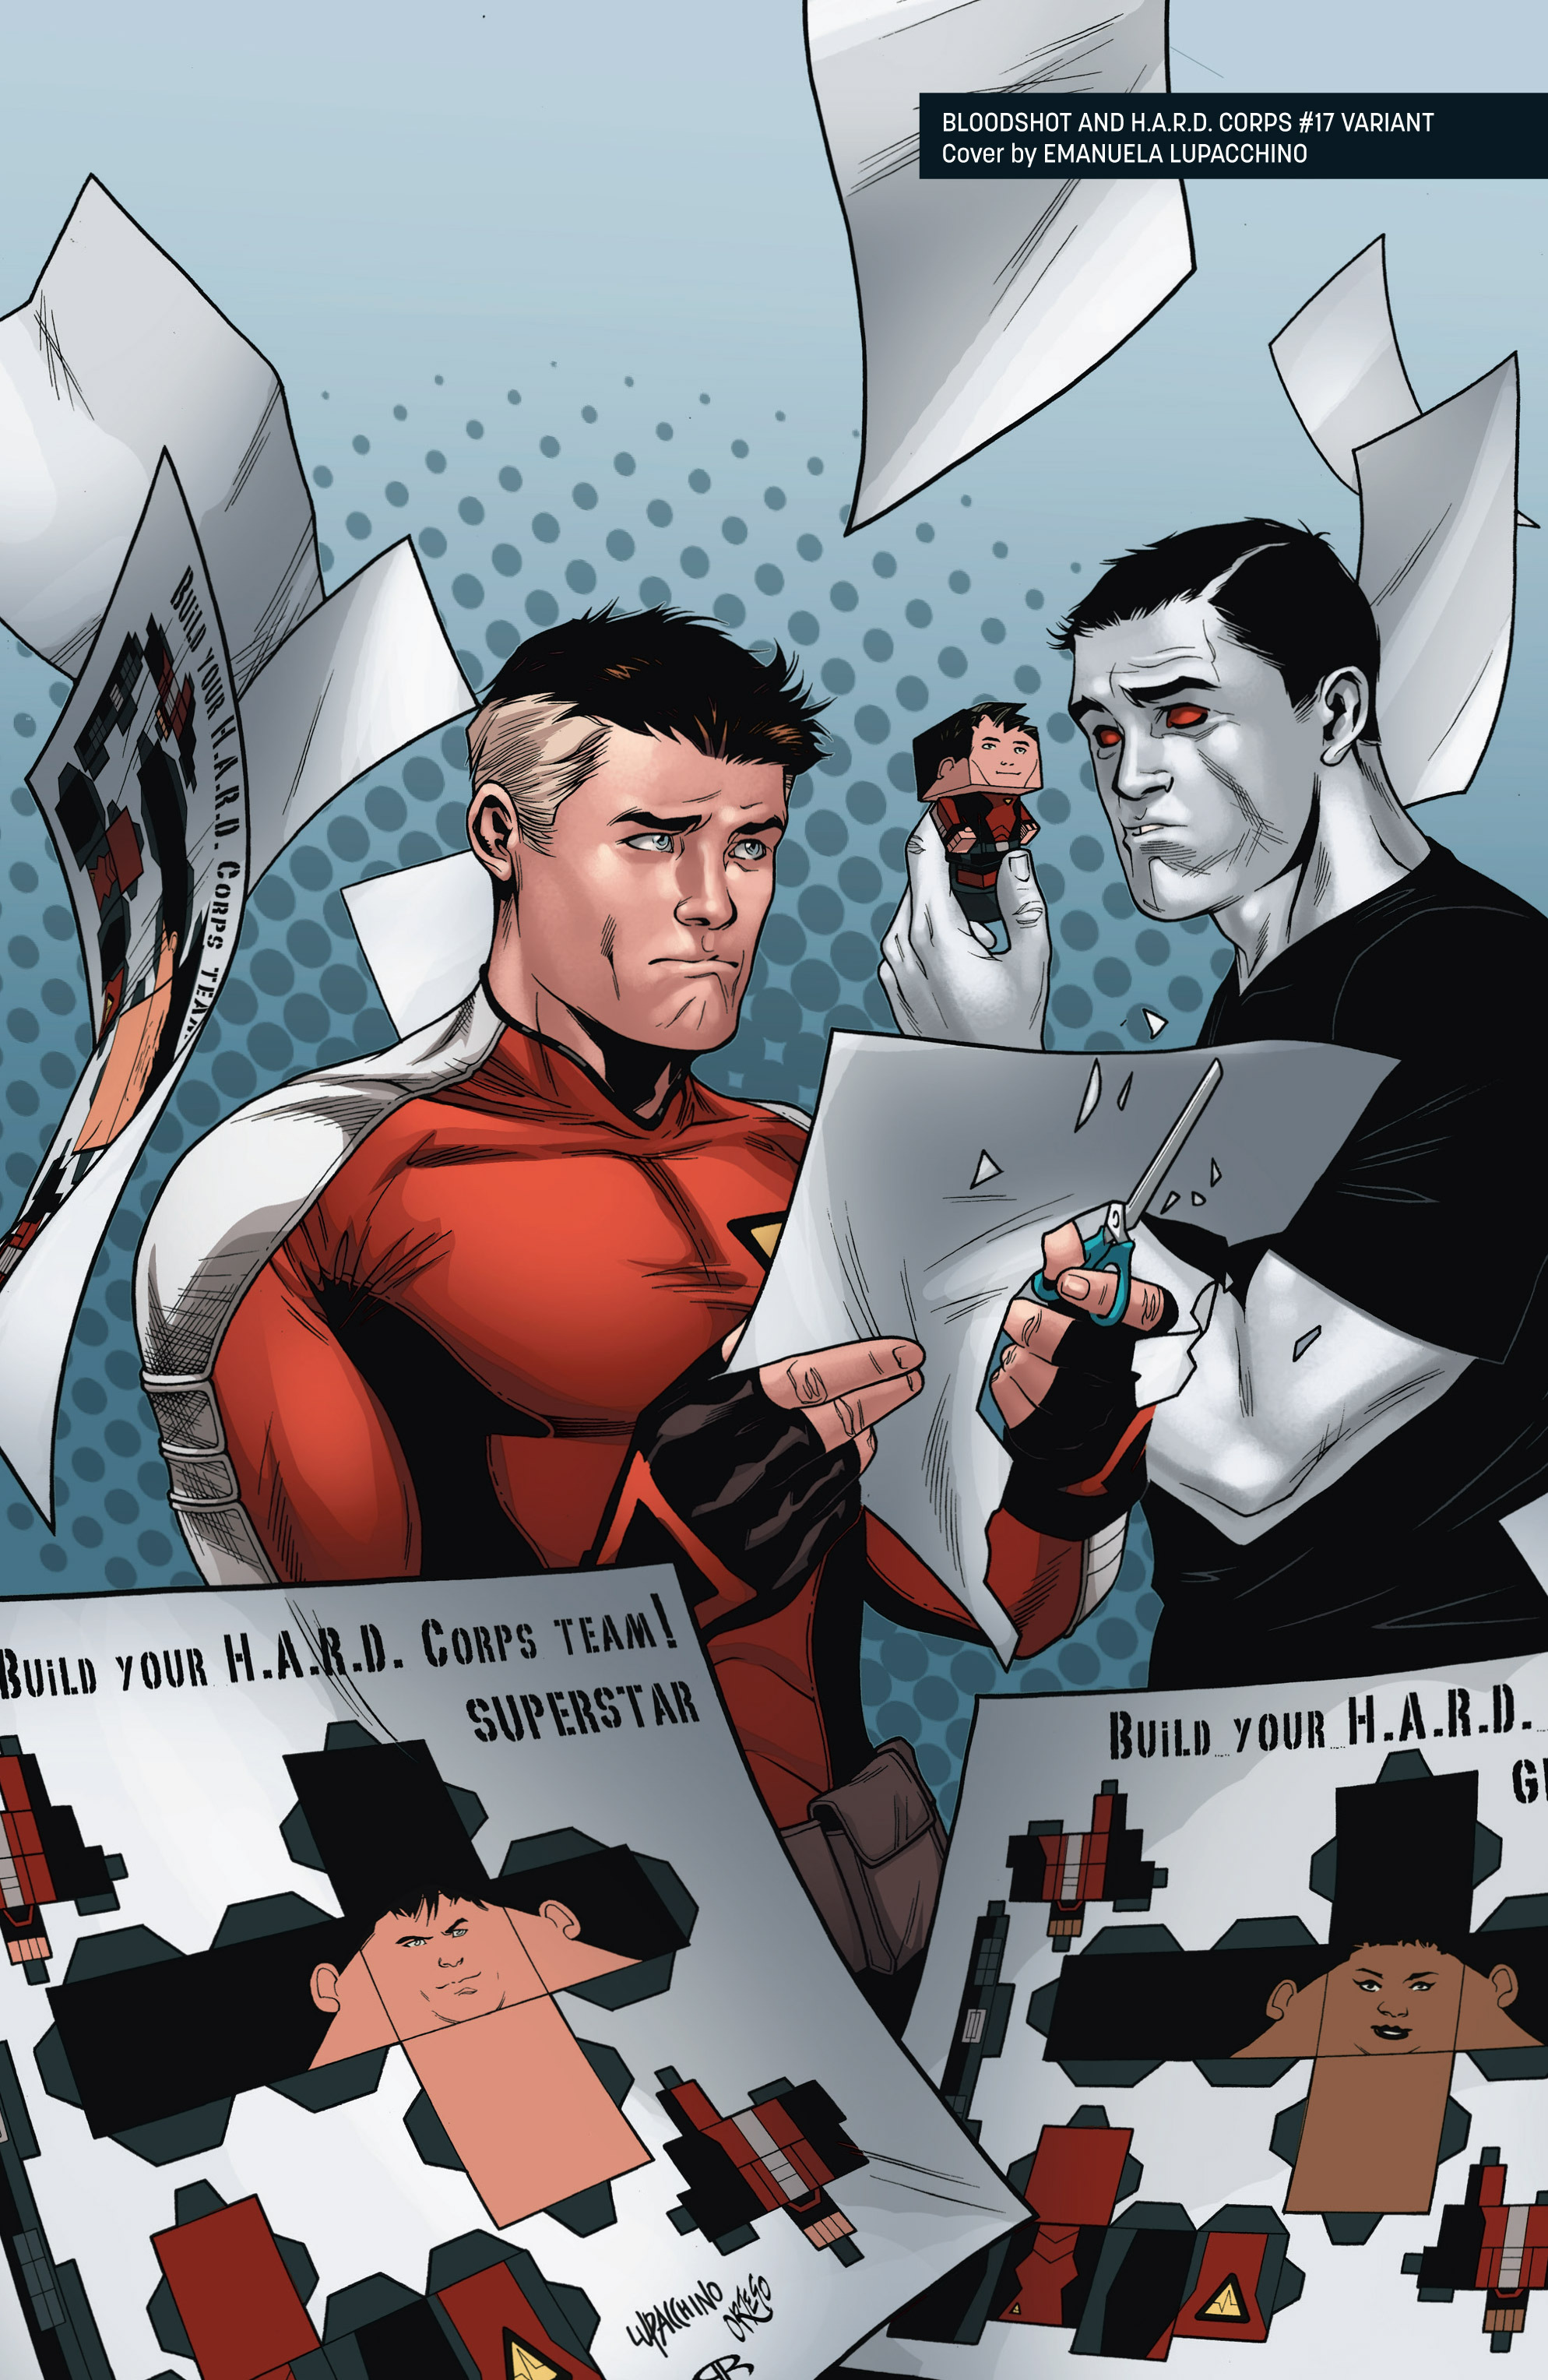 Read online Bloodshot and H.A.R.D.Corps comic -  Issue # TPB 4 - 126